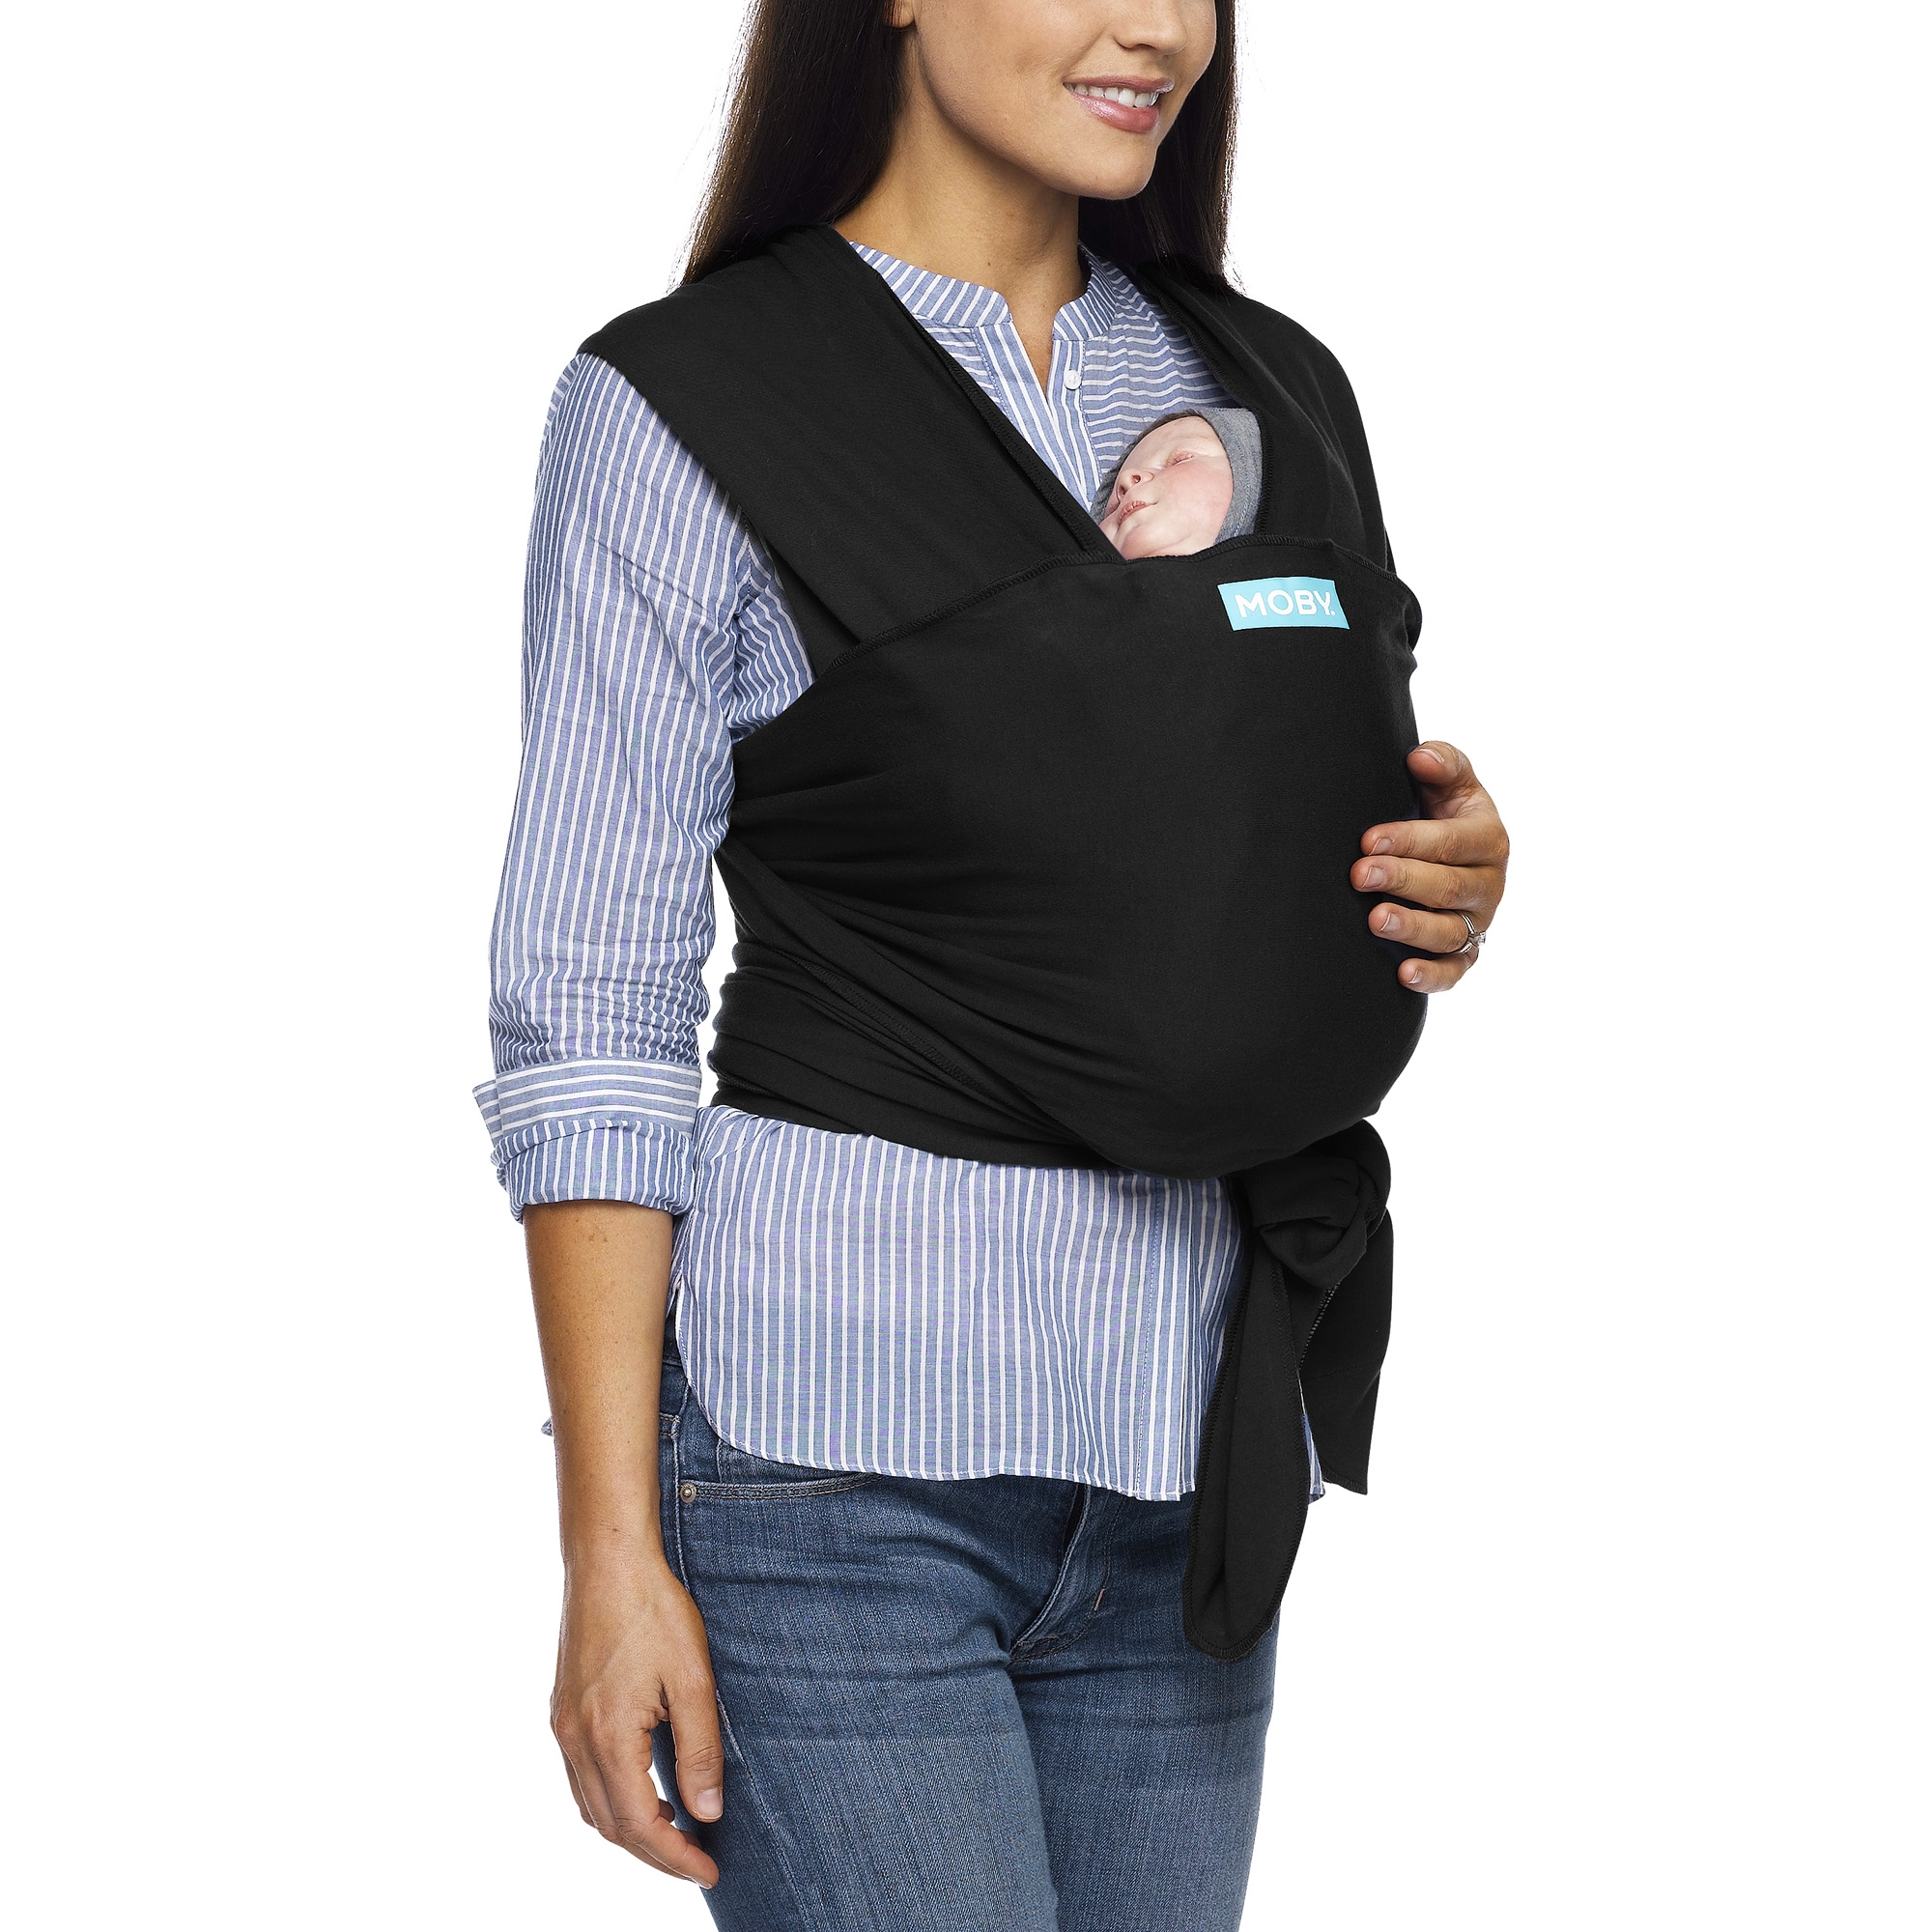 Moby Wrap Evolution Moby Wrap Best Baby Carrier Baby Wearing